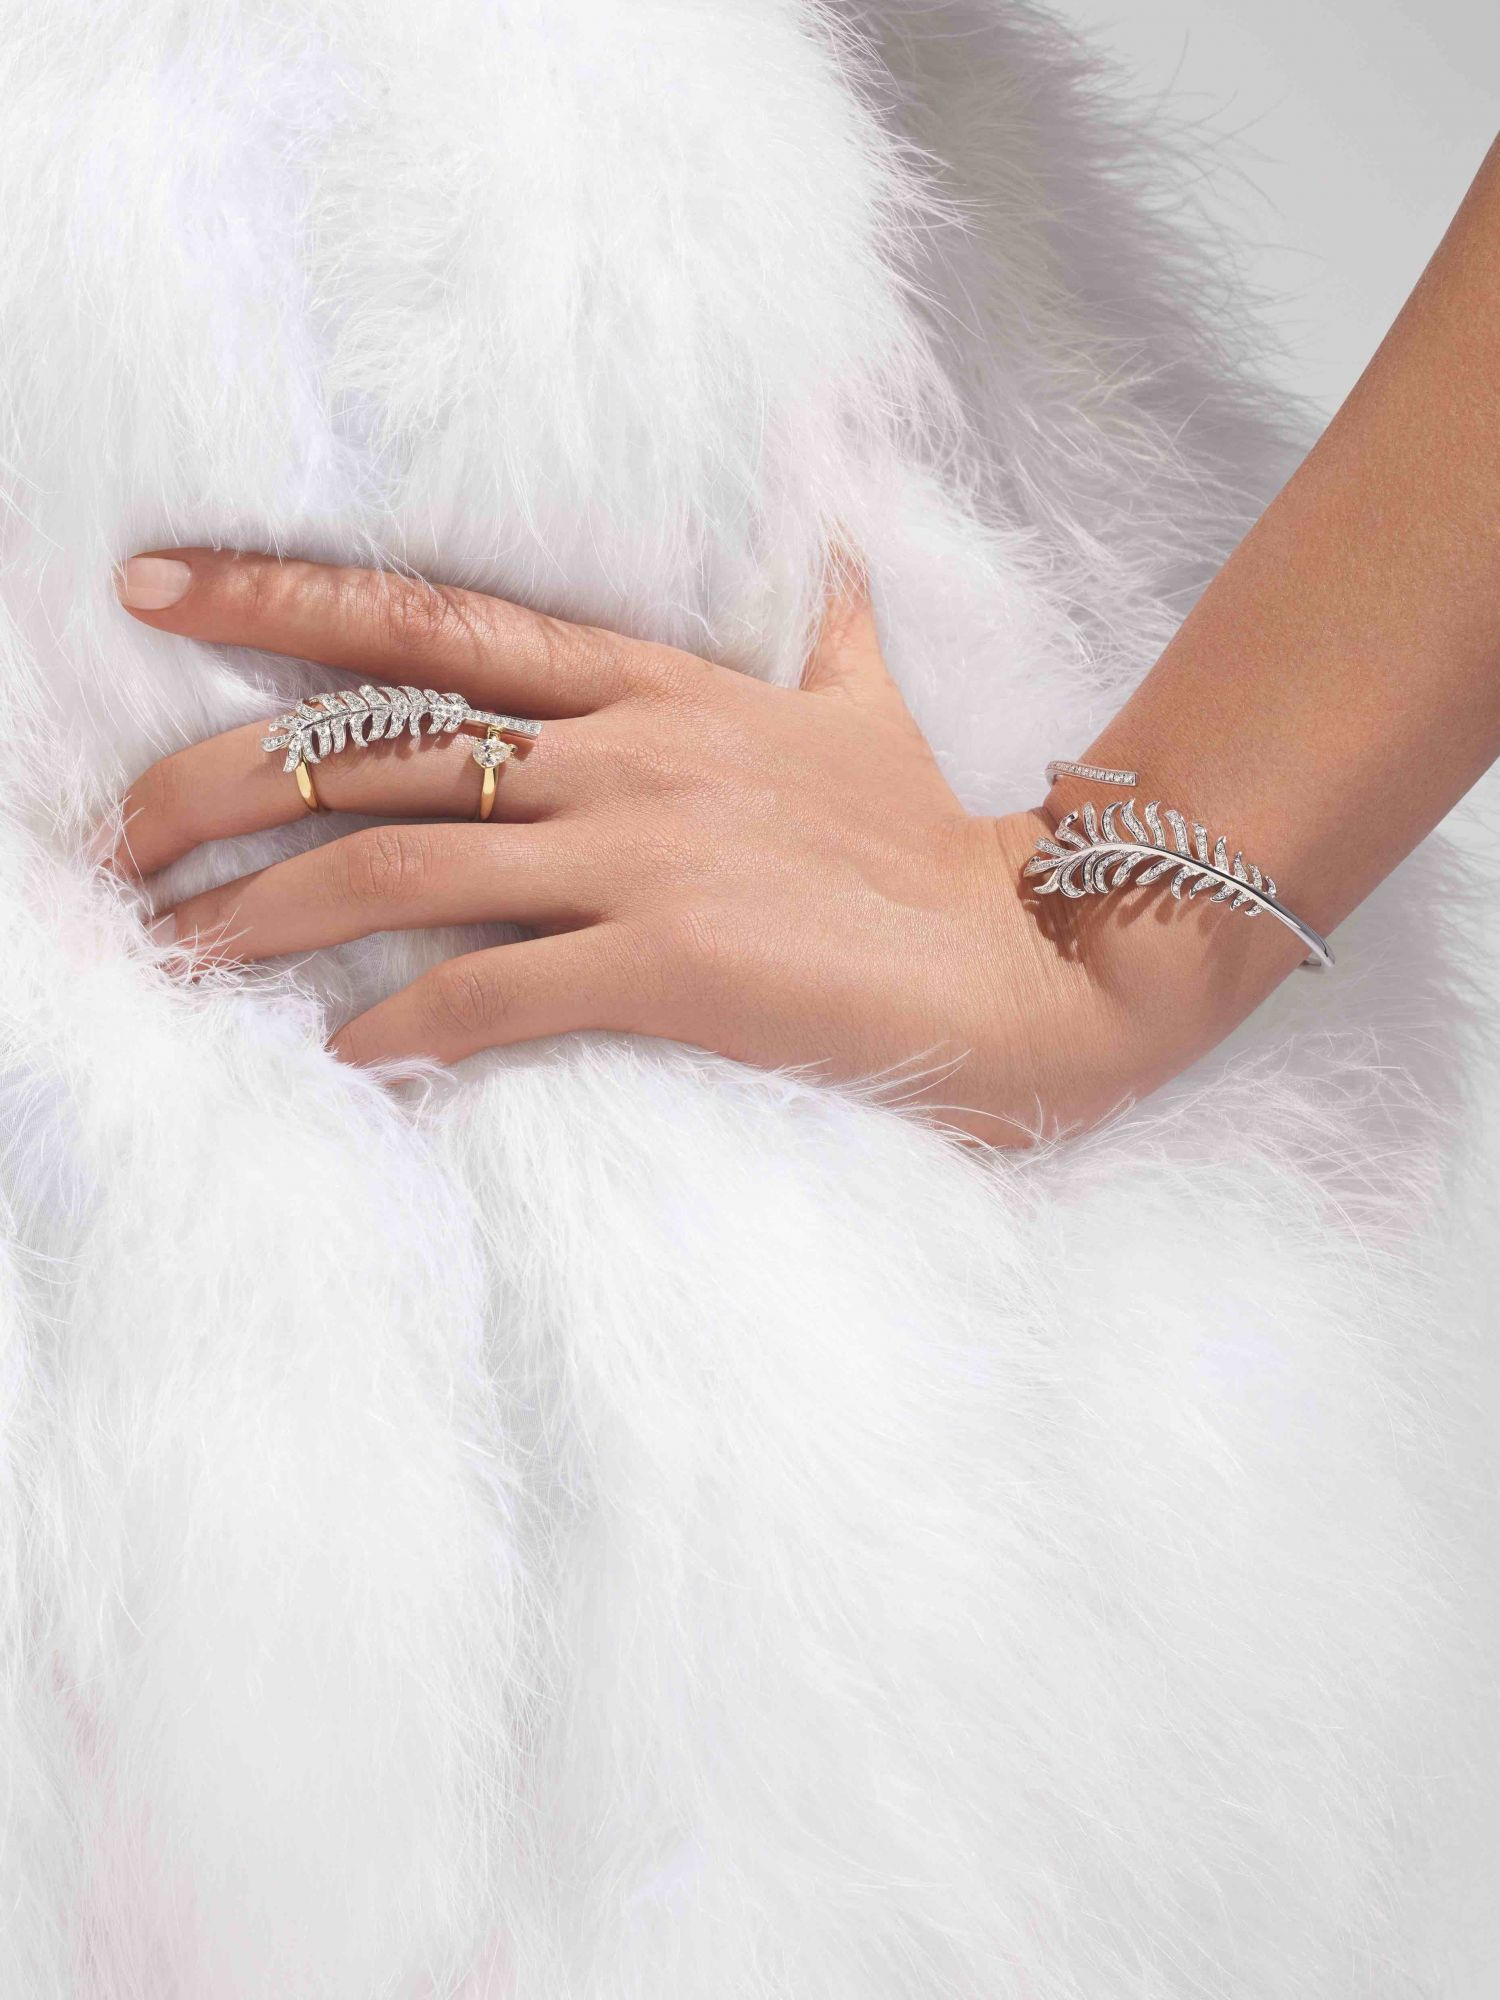 Editor's Note: Pretty Fine Jewellery From 2020 to Perk You Up